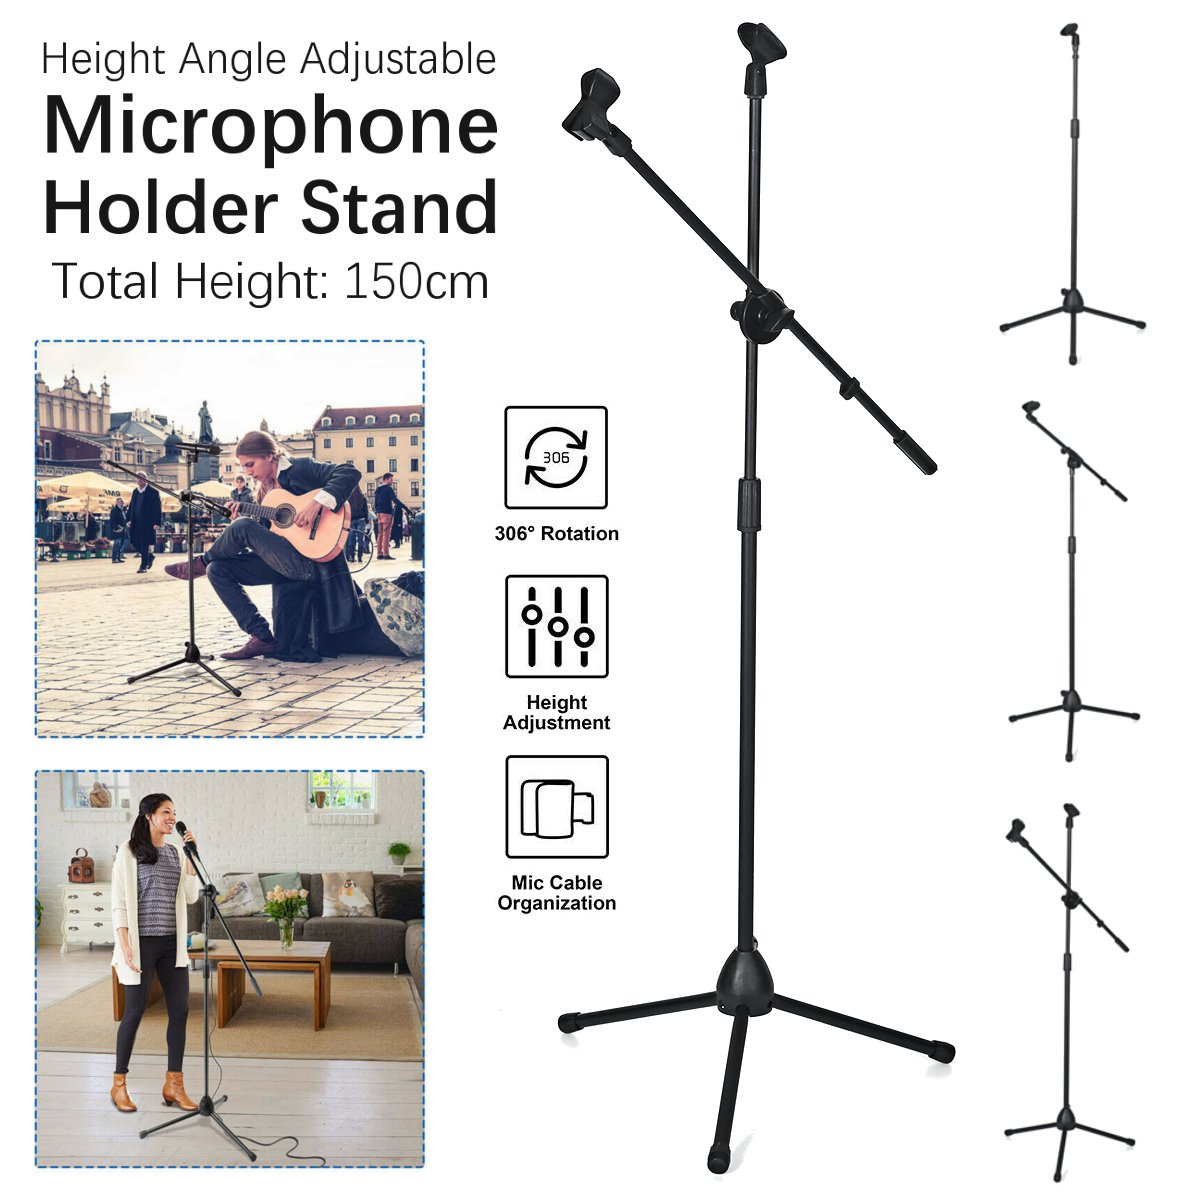 150cm Microphone Stand Holder Boom Arm Height Angle Adjustable With Tripod Base Universal Shockproof Mount Holder Mic Stand